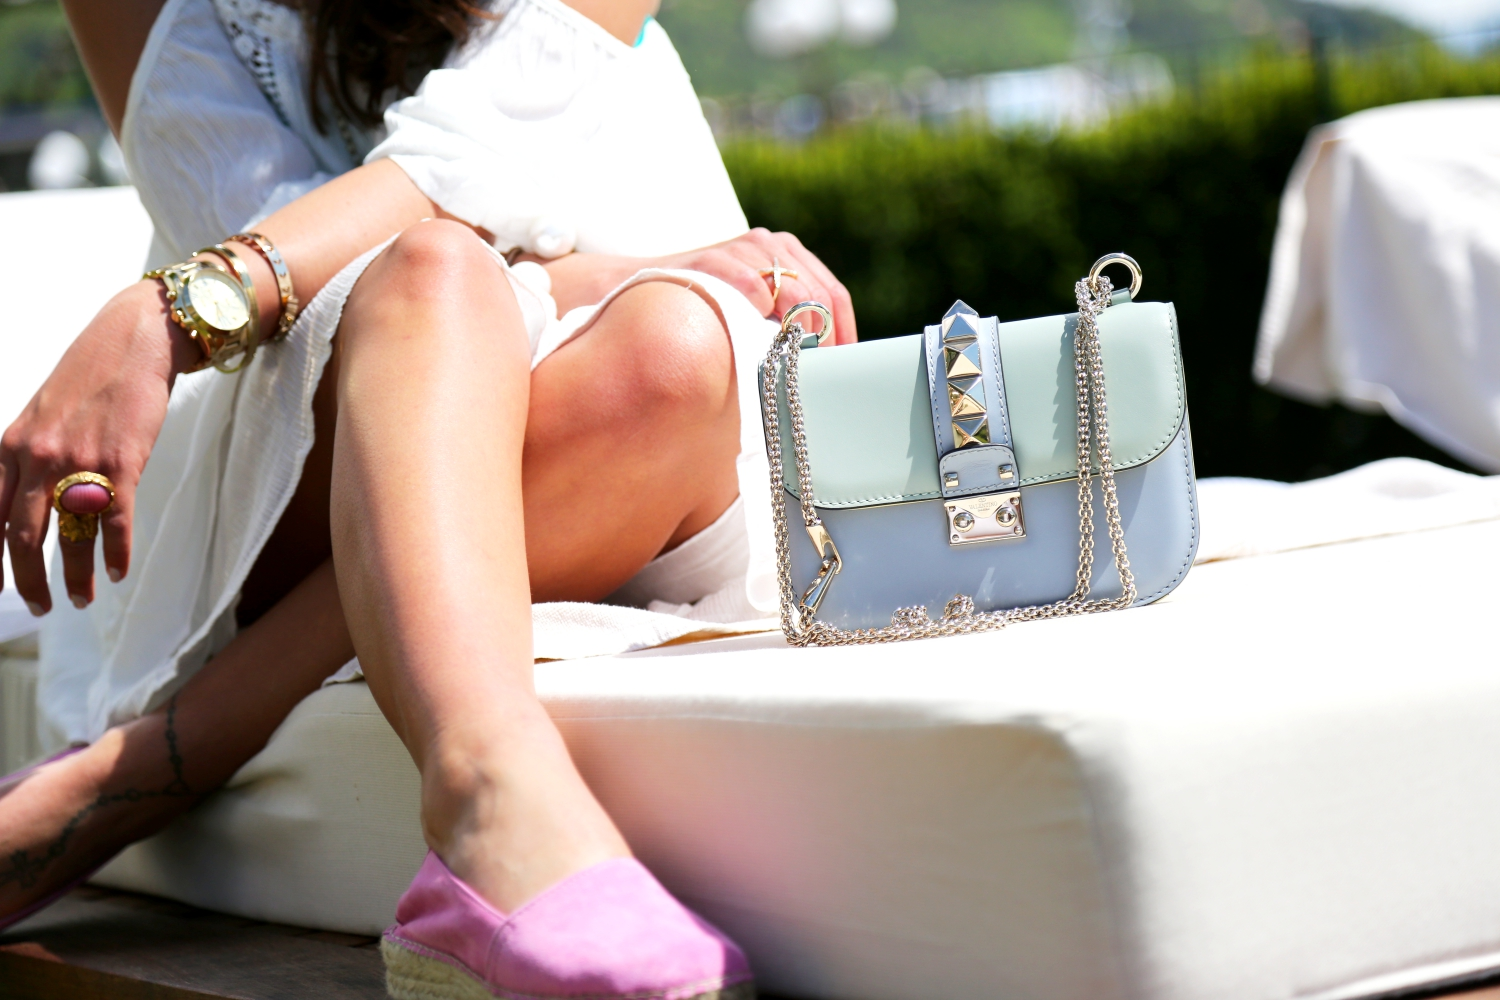 outfit-beach-spa-look-glam-lock-bag-valentino-garavani-armcandy-espadrilles